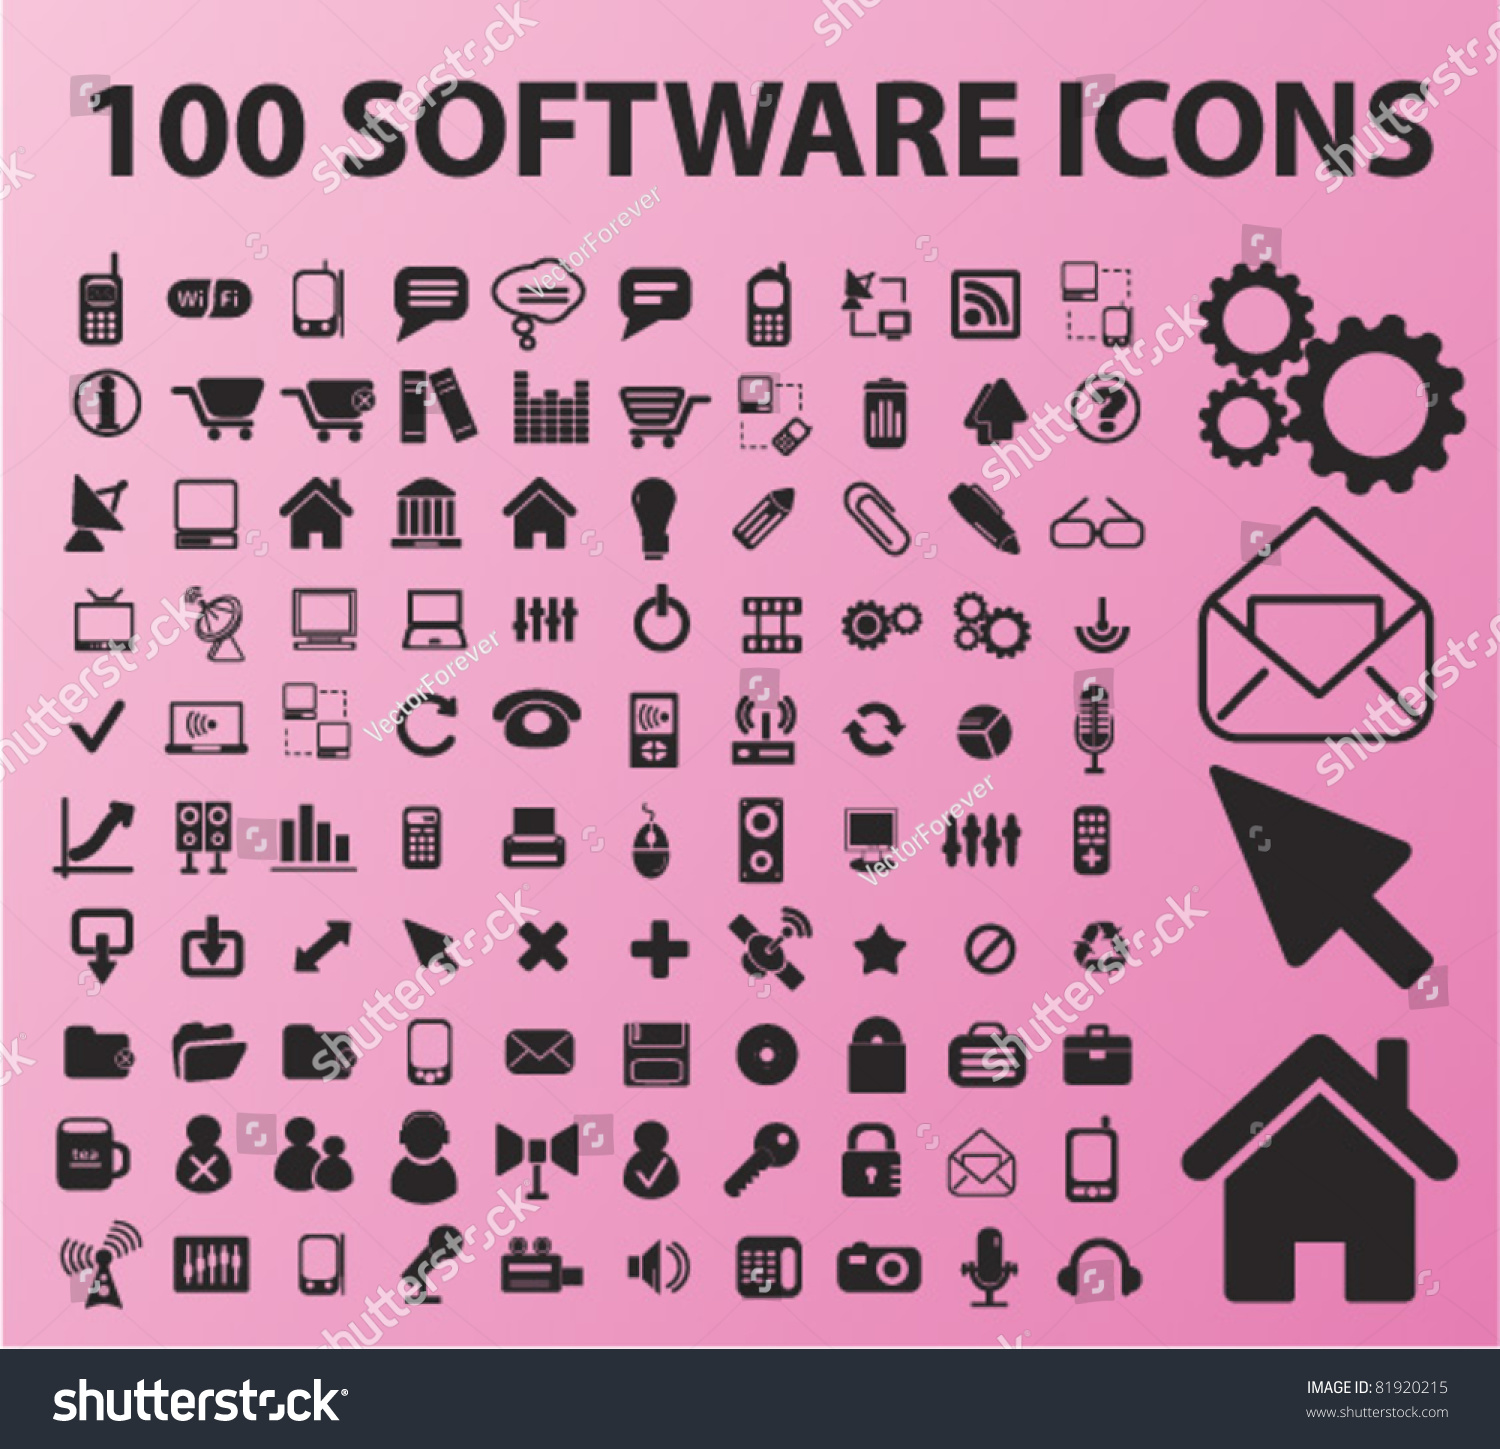 100 Software Icons Signs Vector Illustrations Stock Vector: vector image software